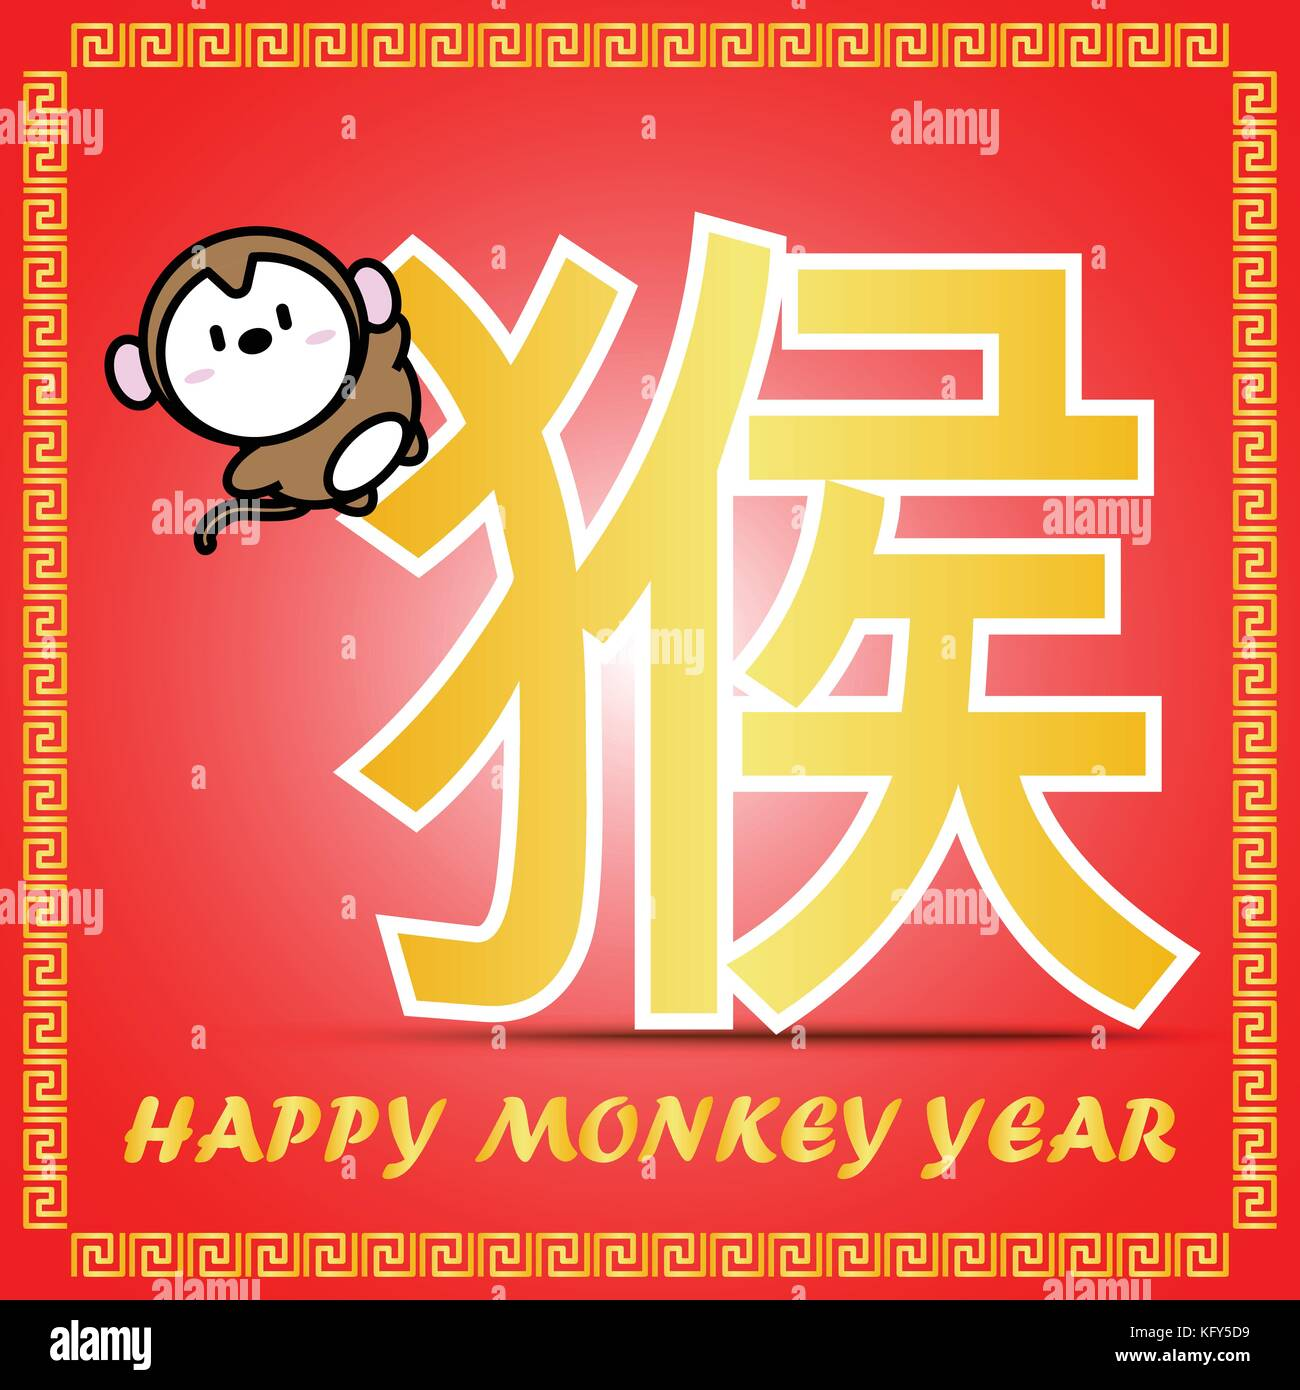 Big golden chinese word symbol icon of chinese zodiac calendar big golden chinese word symbol icon of chinese zodiac calendar with cute cartoon character for monkey year on red background biocorpaavc